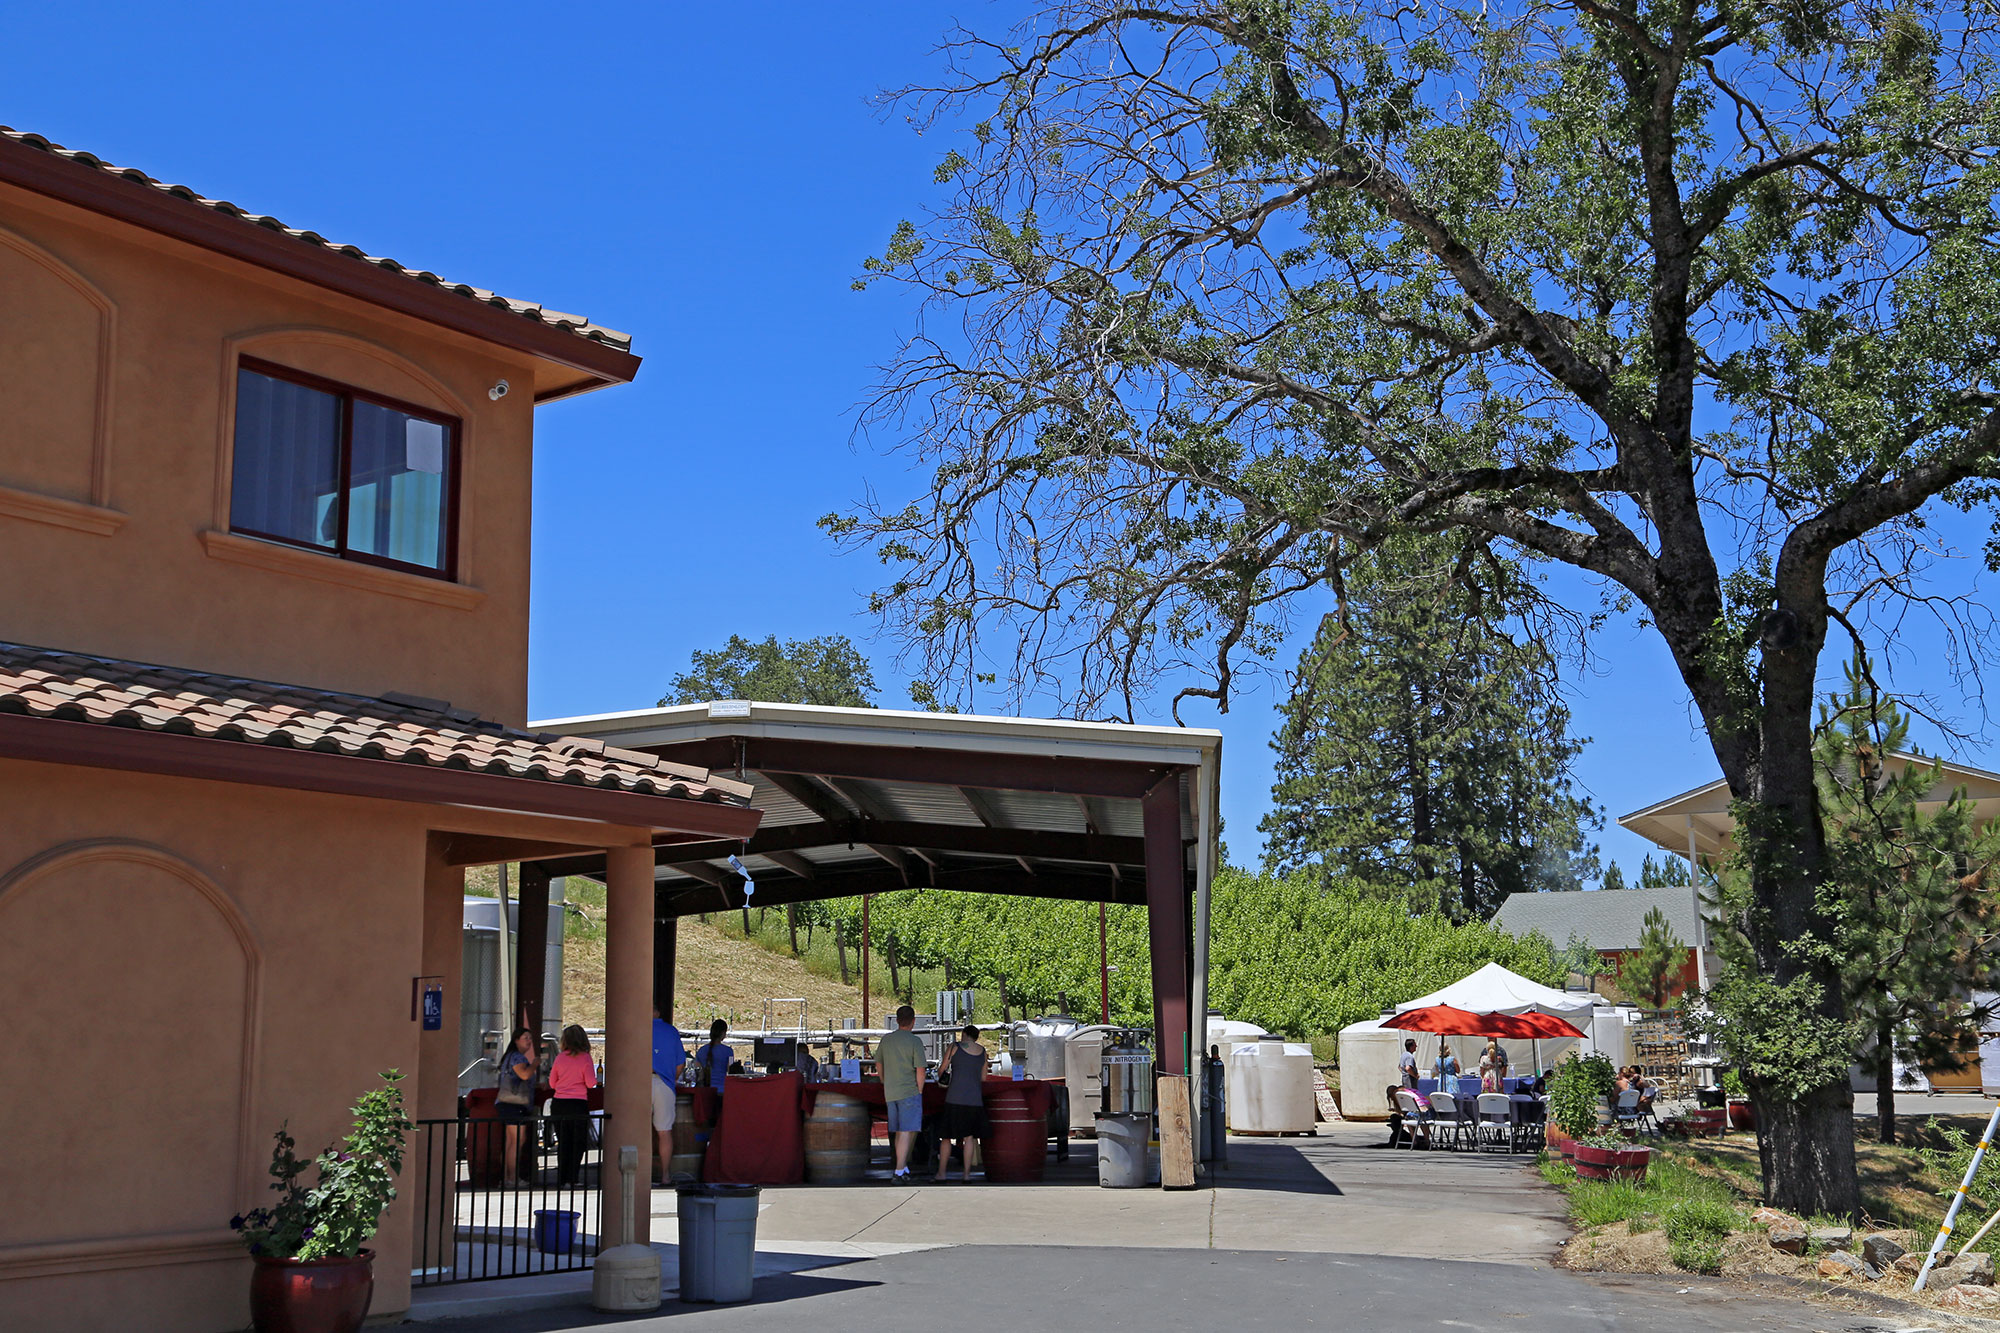 Winery Event in Fair Play, California.  Quality winery for sale.